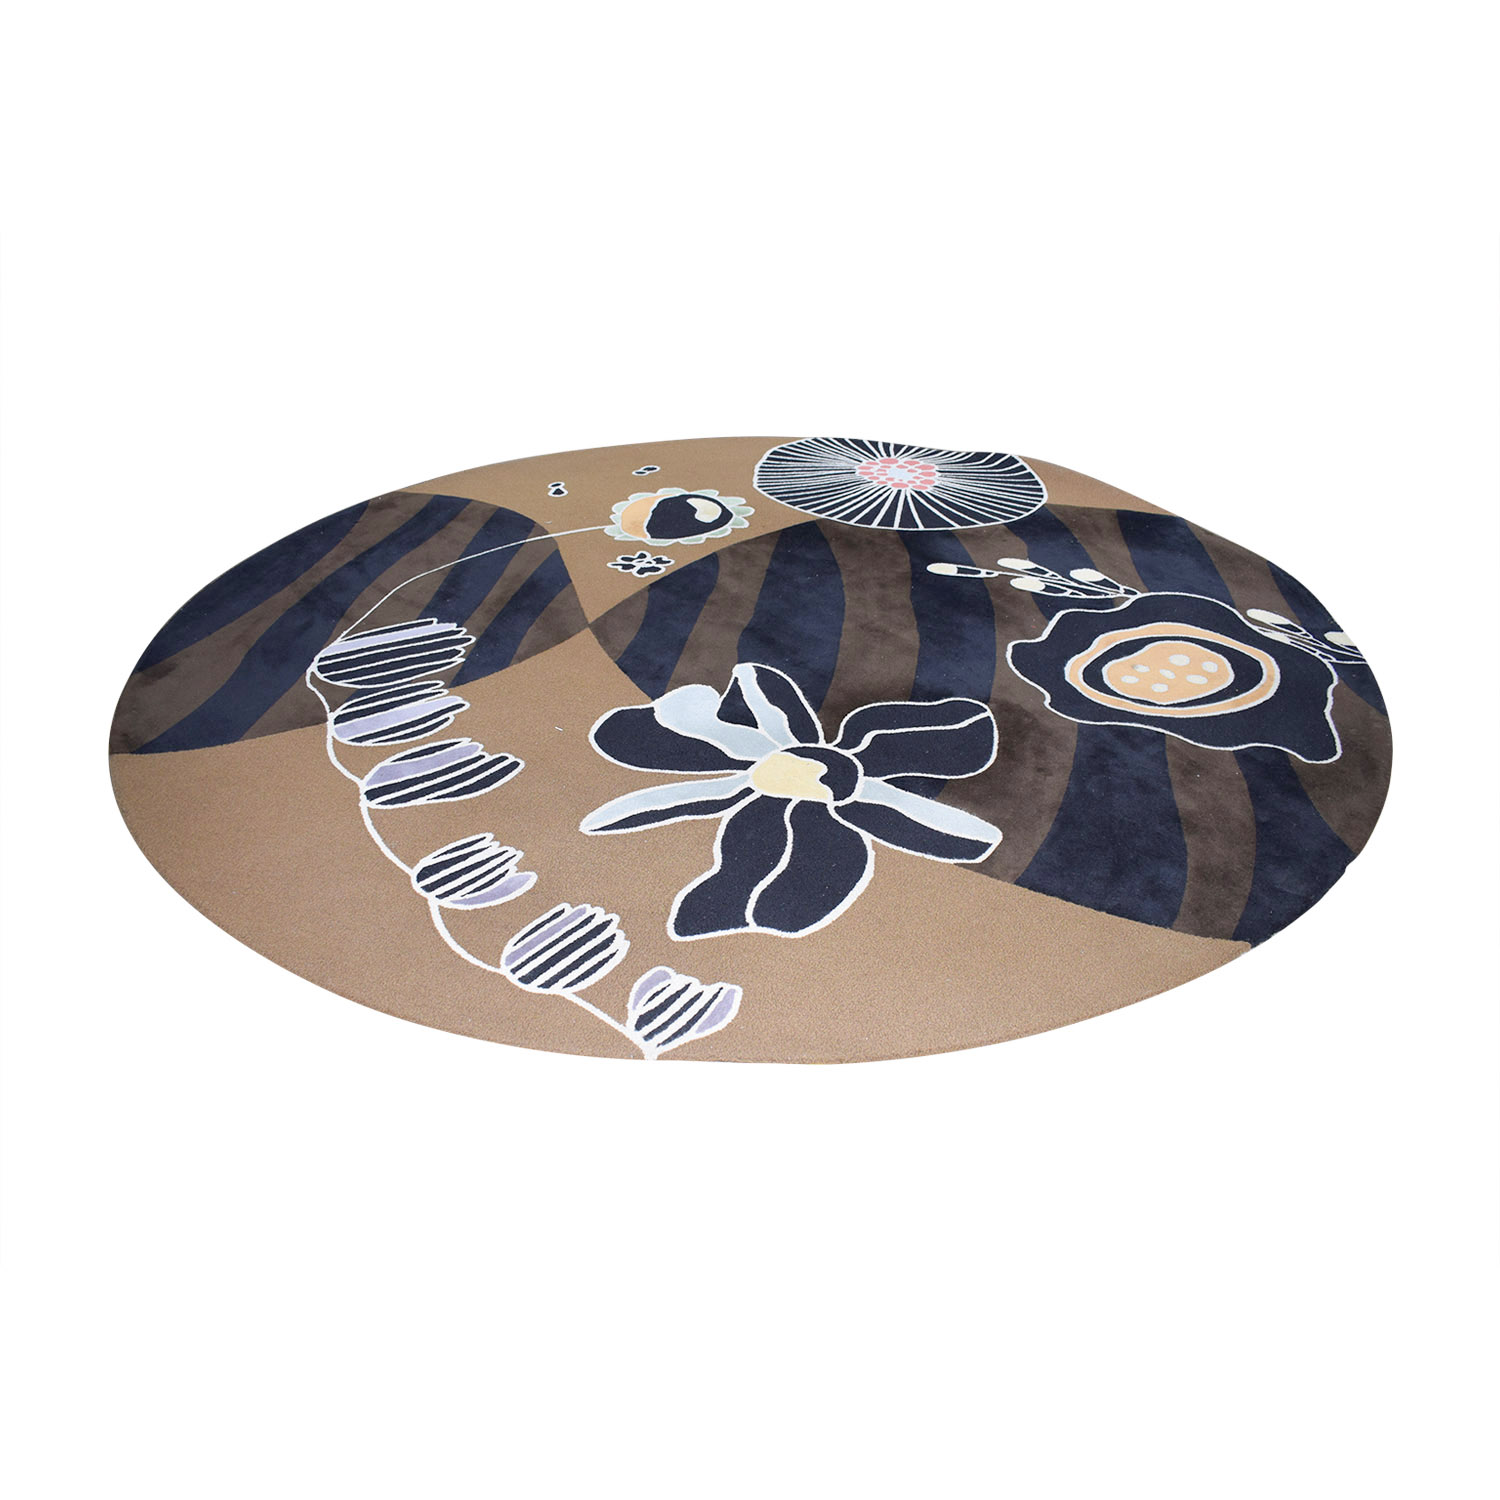 Masland Rug Collection Masland Rug Collection Infinity Round Rug nj